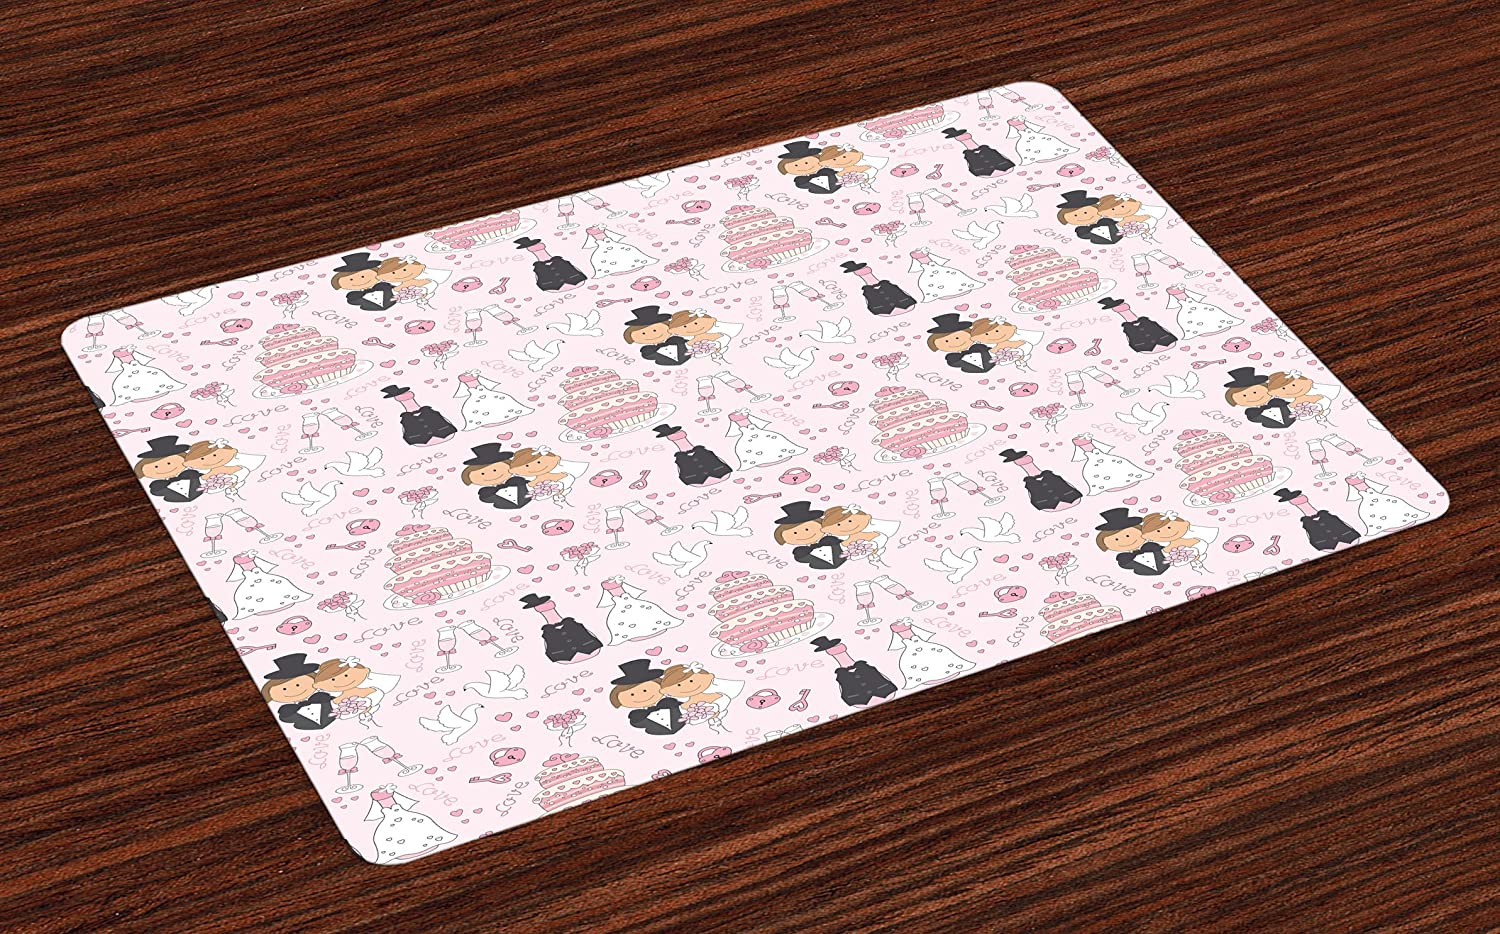 Ambesonne Wedding Place Mats Set of 4, Hand Drawn Pattern of Couple Getting Married Celebration Cakes Flowers Drinks, Washable Fabric Placemats for Dining Room Kitchen Table Decor, Pink White Black